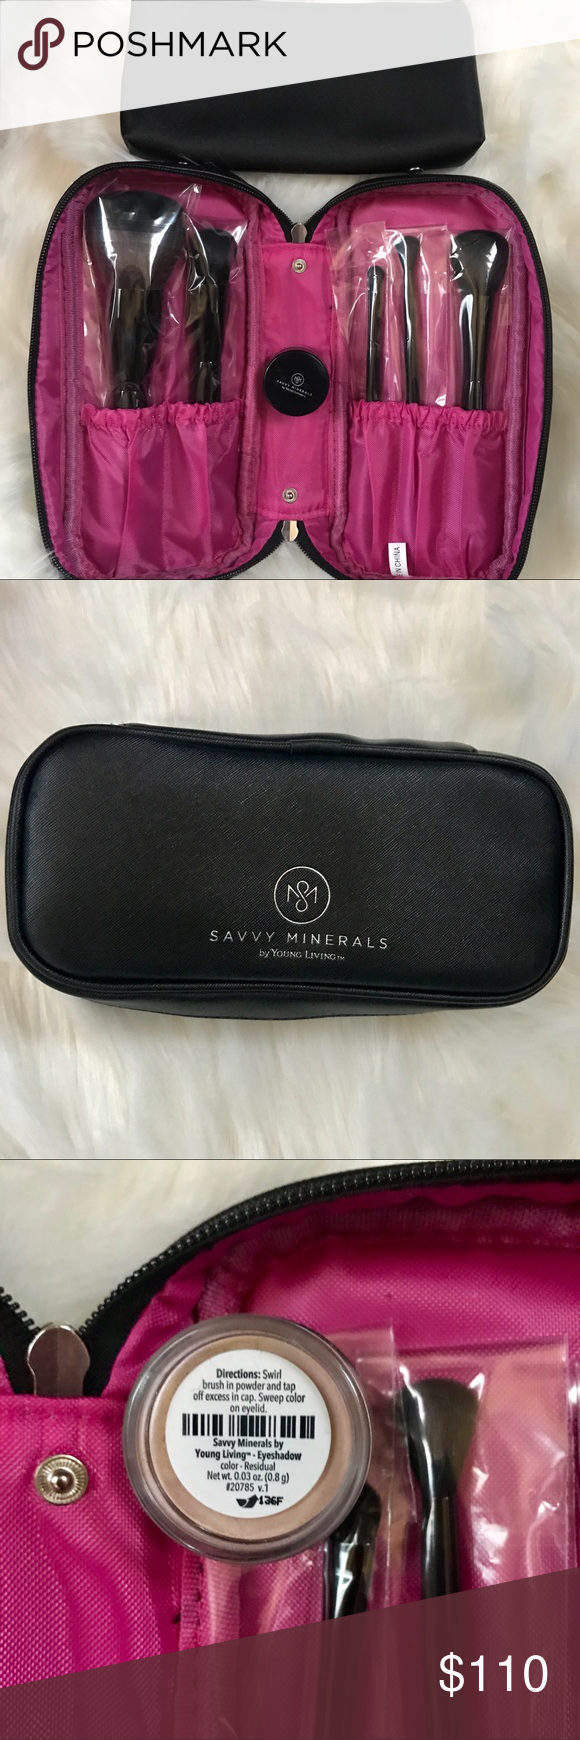 Luxury Savvy Minerals makeup brushes & makeup How to